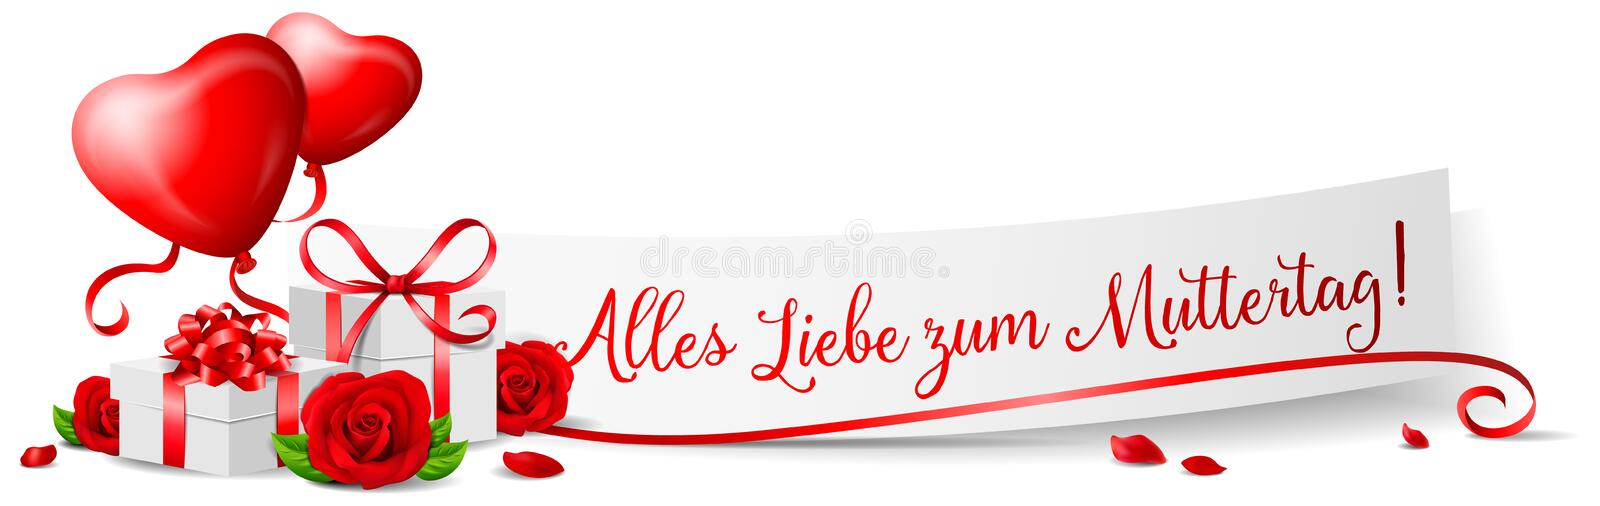 Alles Liebe zum Muttertag happy mothers day banner with roses and presents isolated. Design royalty free illustration